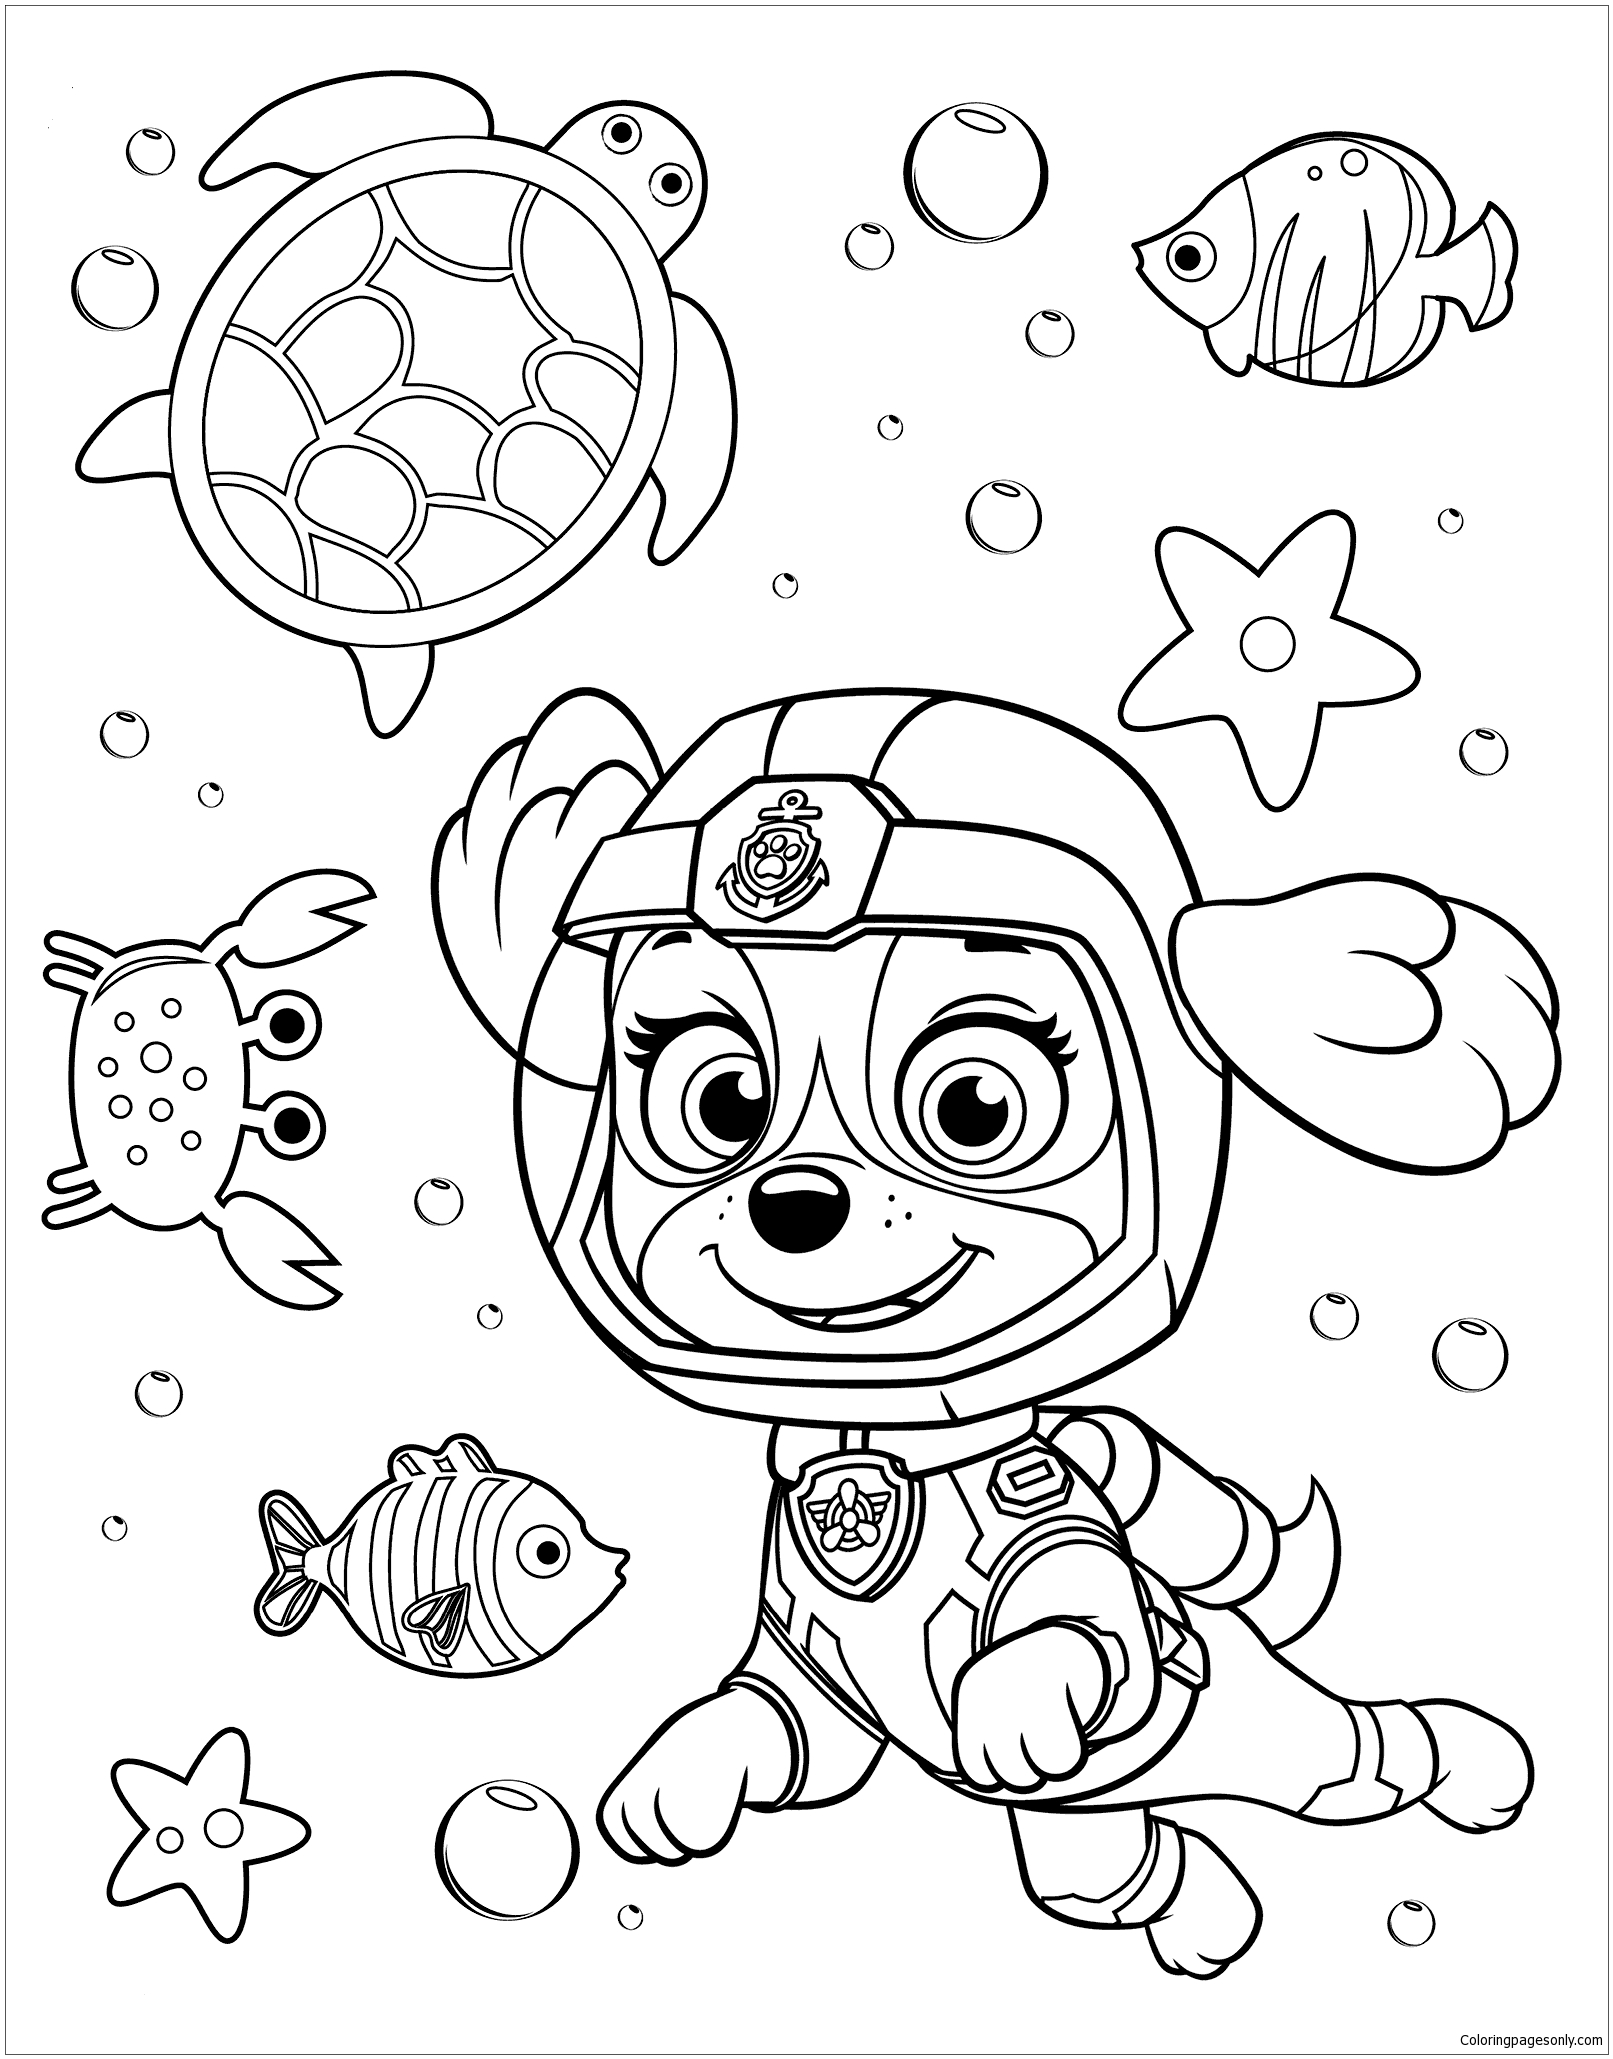 Paw Patrol Rubble Underwater 2 Coloring Page - Free ...